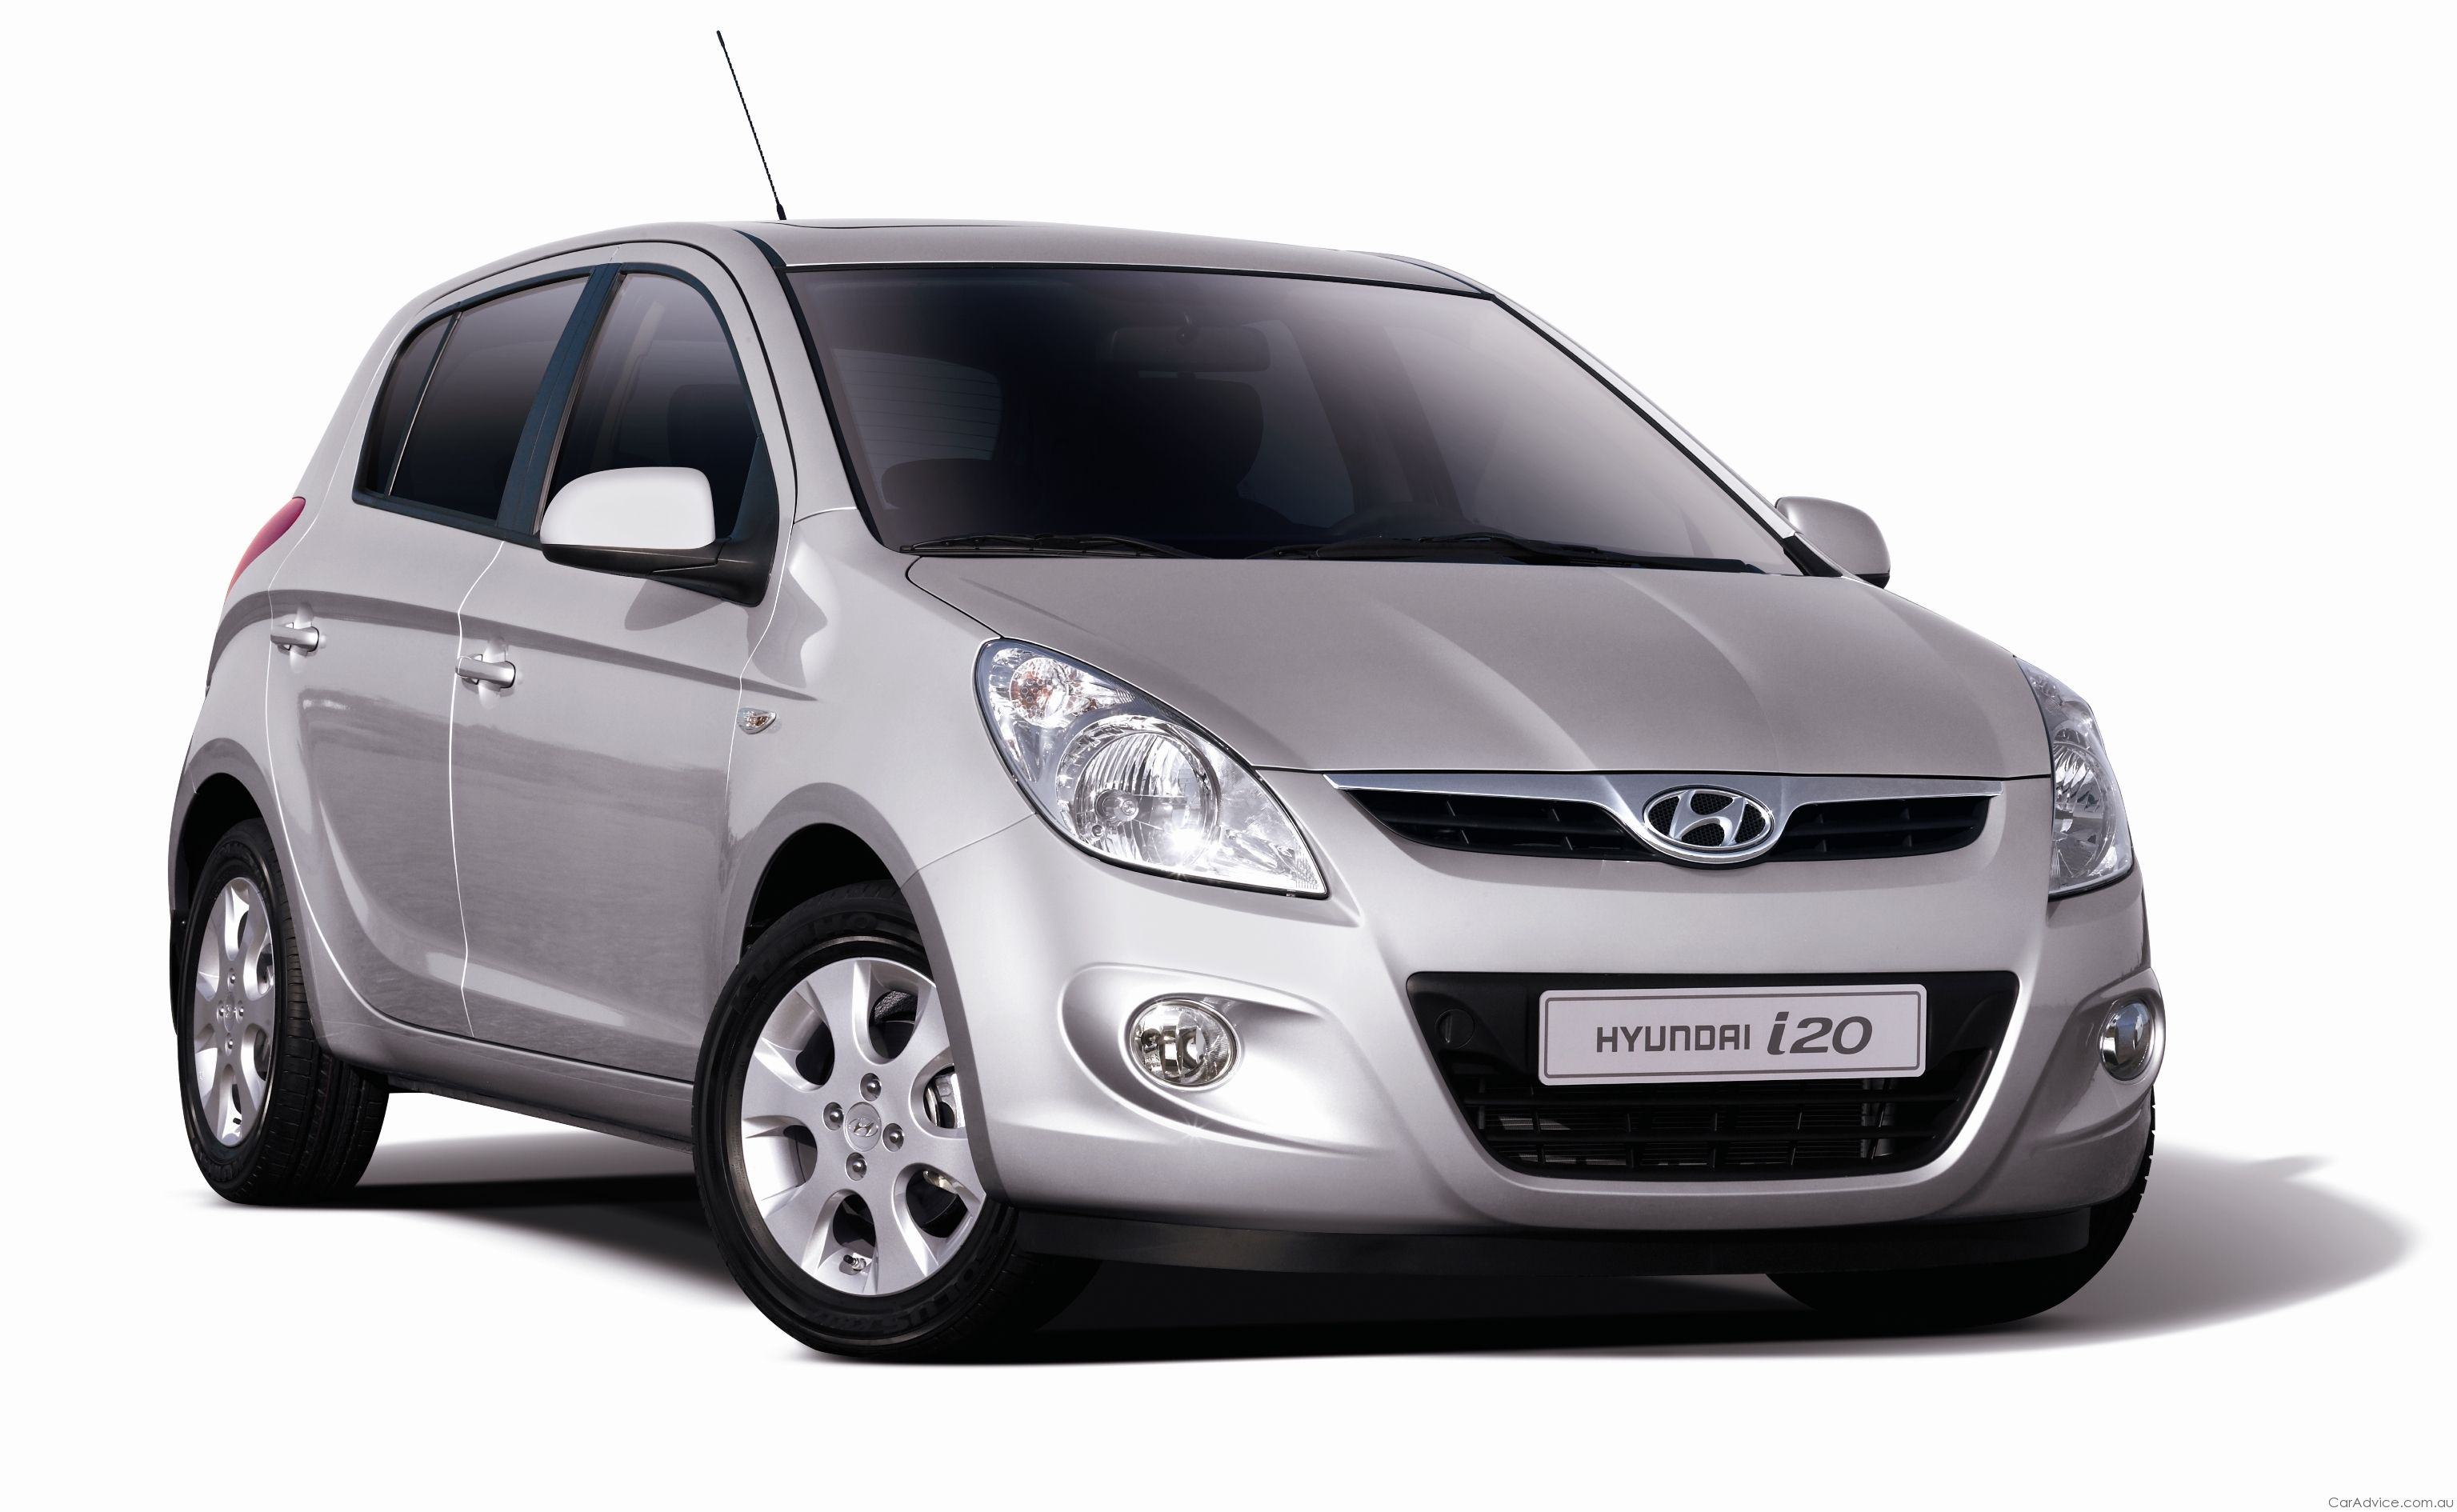 Get All New Hyundai Car Listings In Chandigarh Visit Quikrcars To Find Great Deals On New Hyundai Cars In Chandigarh With On R Hyundai Cars Car Rental Hyundai